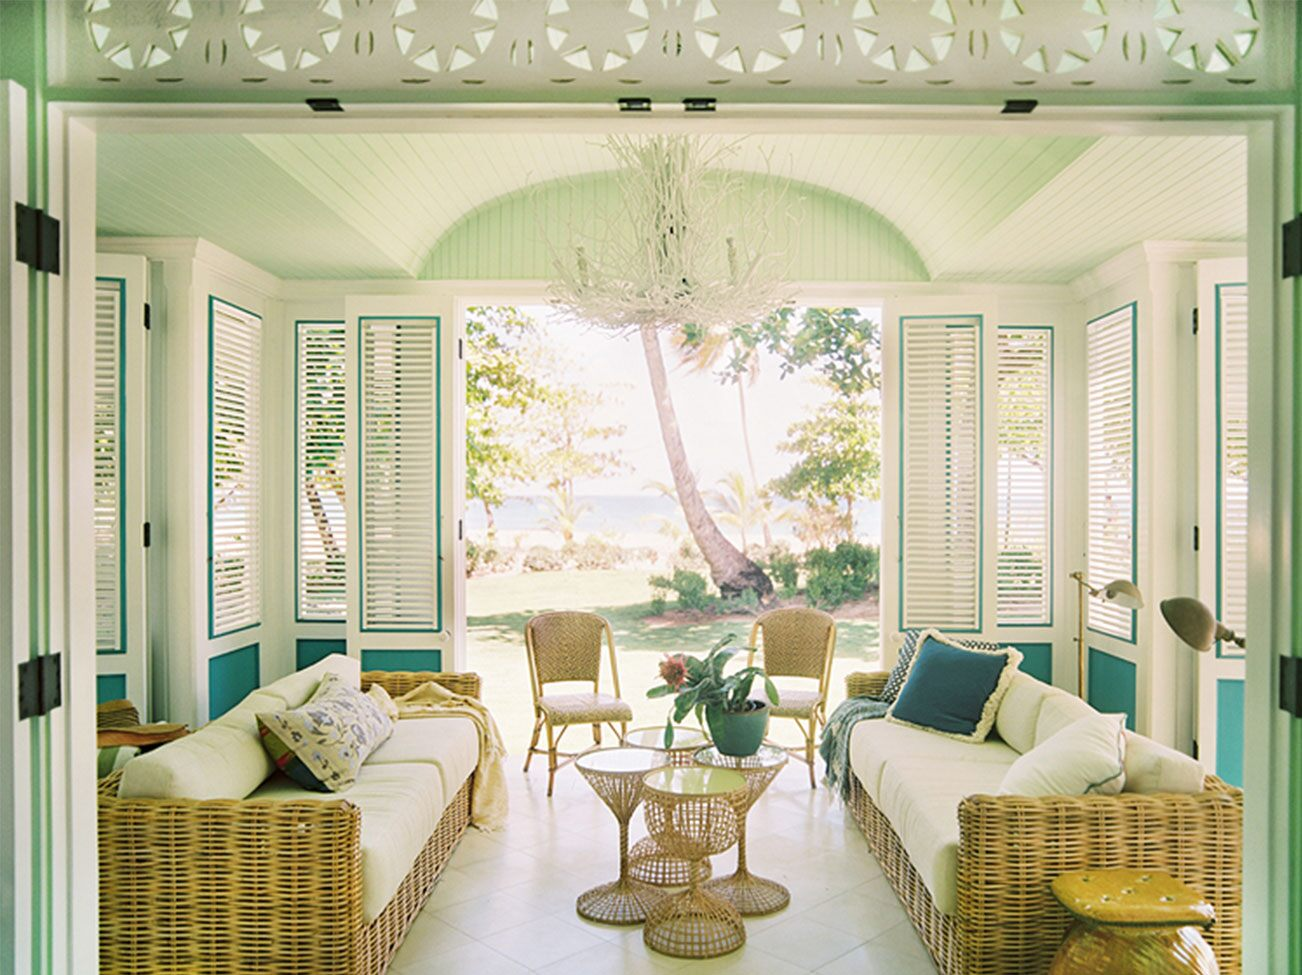 An island veranda in green and creamy white hues with hinged shutter panels, two woven wicker sofas and matching chairs.